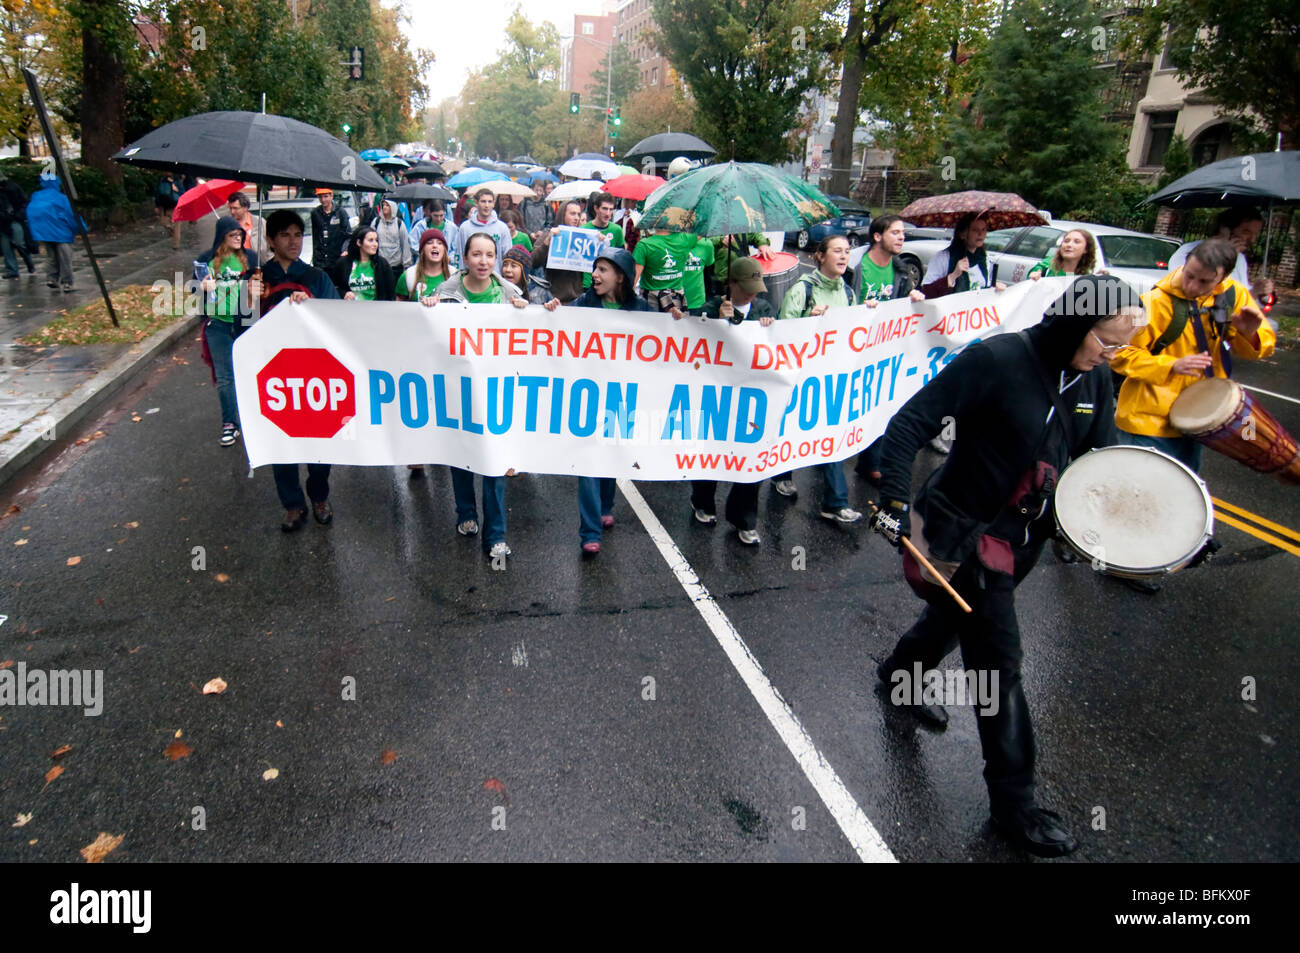 Environmental activists, call for action on climate change during the International Day of Climate Action - Stock Image